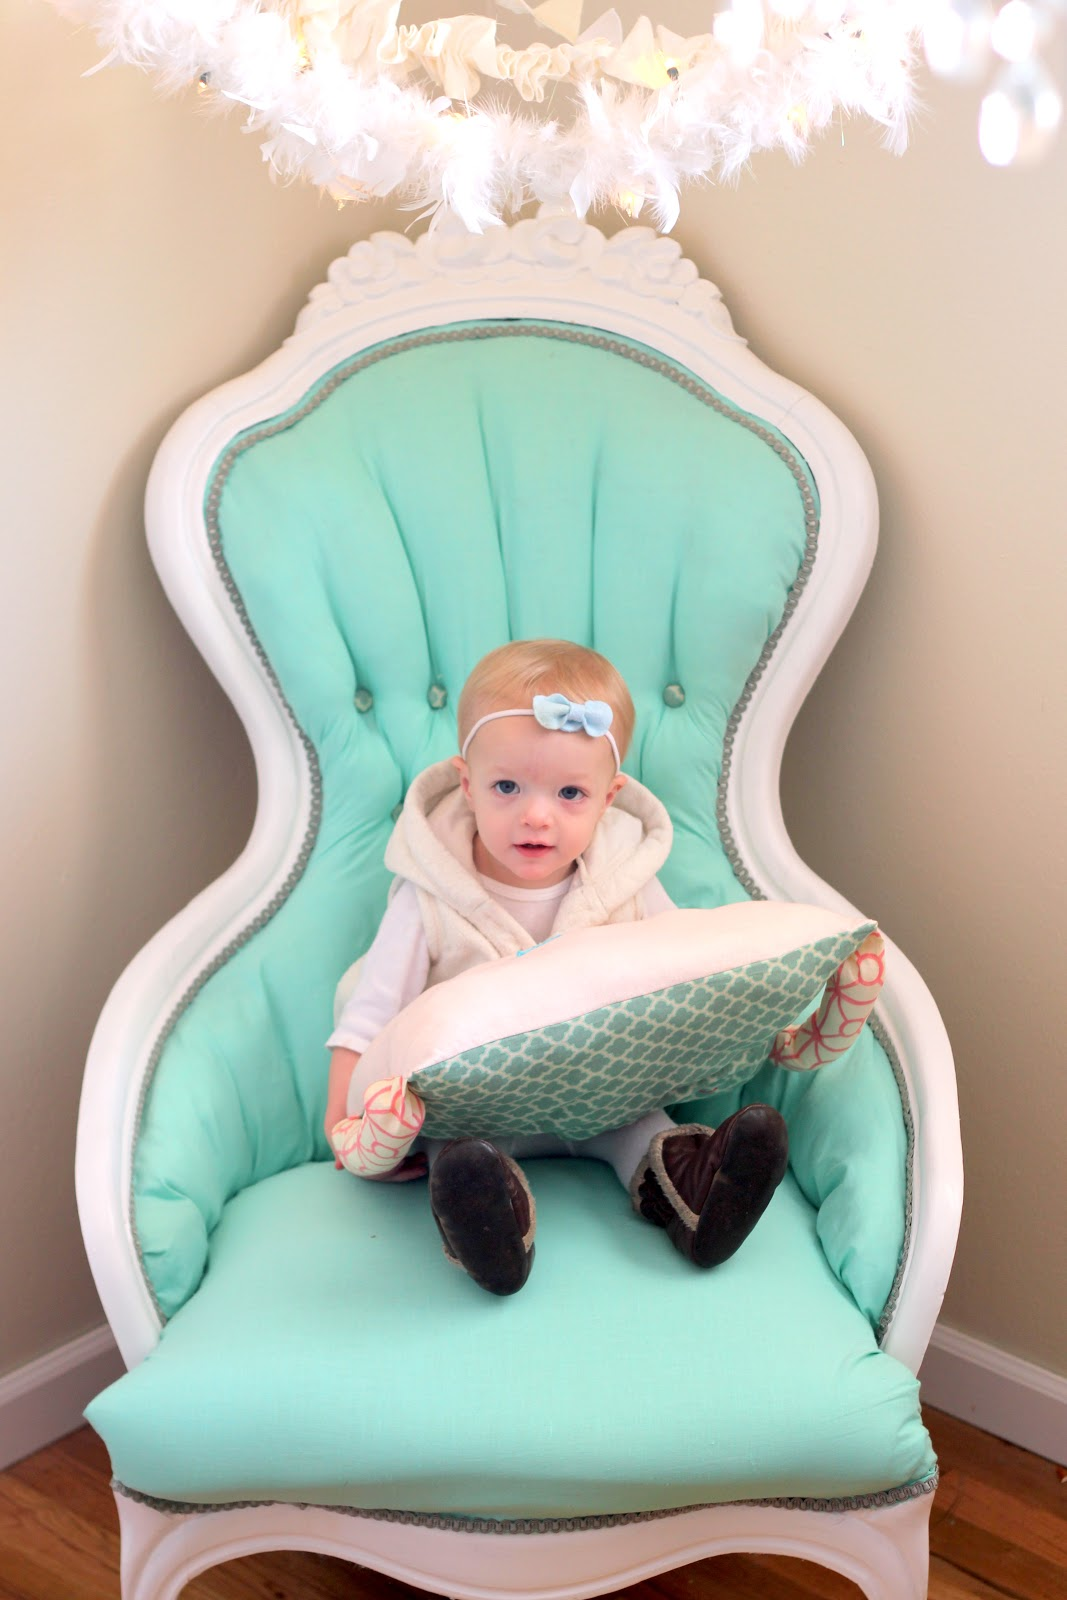 land of nod chair unusual beds aqua redo tutorial how to reupholster a tufted